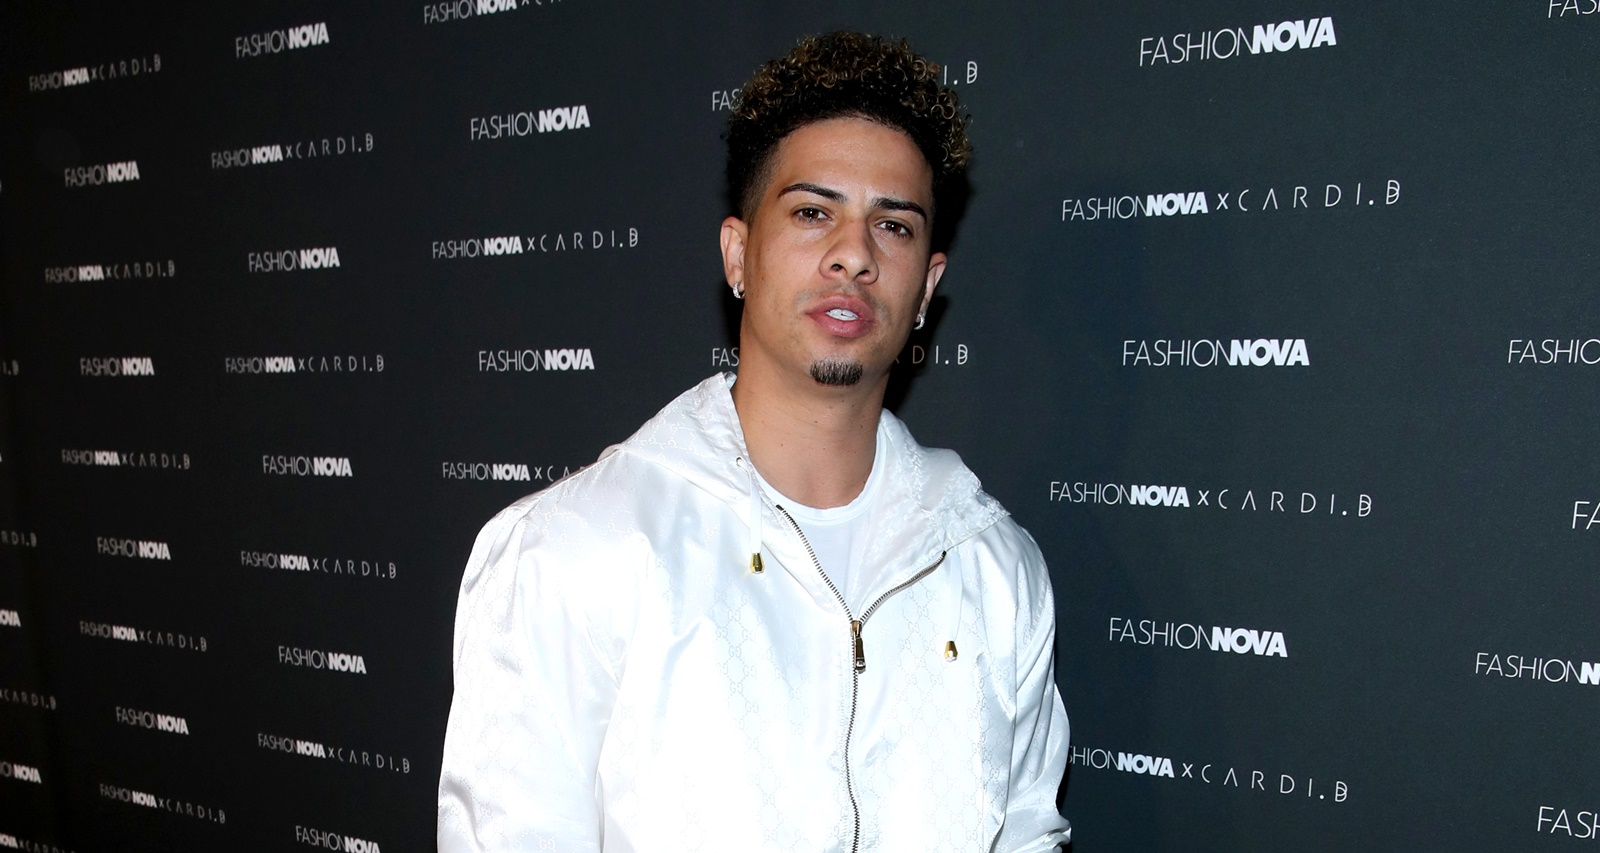 Austin McBroom's Wiki, Age, Fiancée, ACE Family, Children, College & Facts to Know